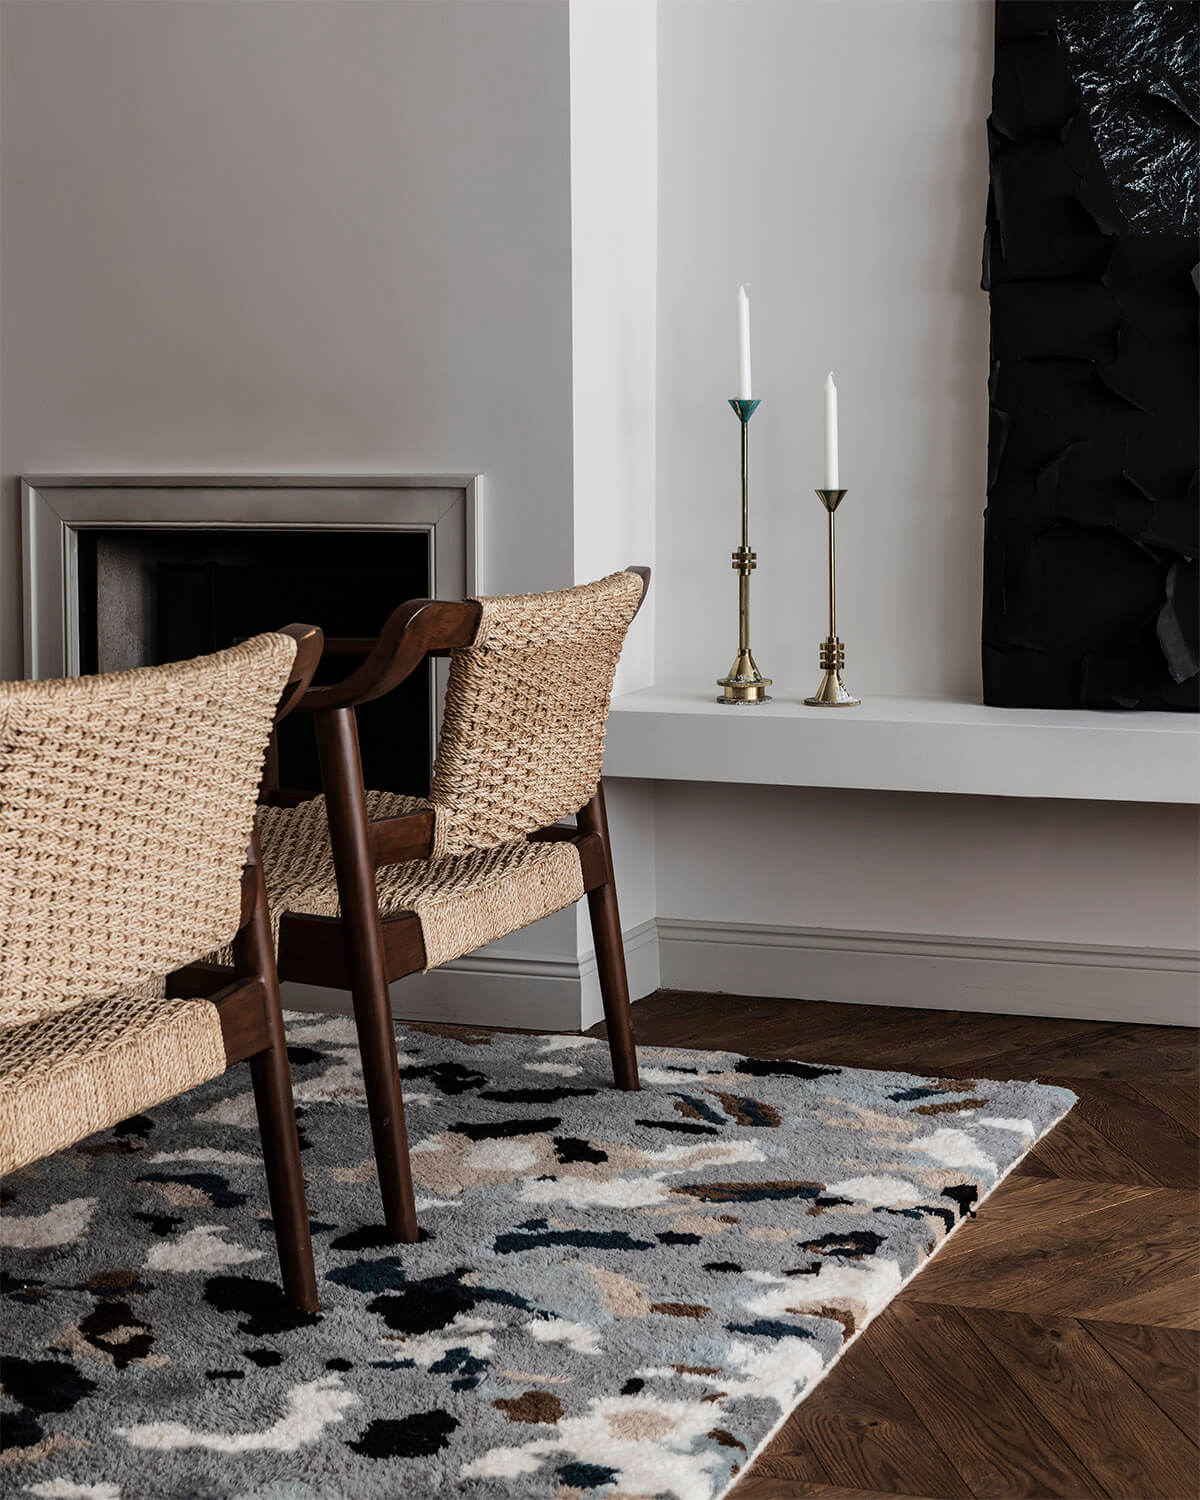 The Archipelago rug in Gray displayed in a nice, light living room setting. There us two armchairs in dark wood with woven backs and seats,